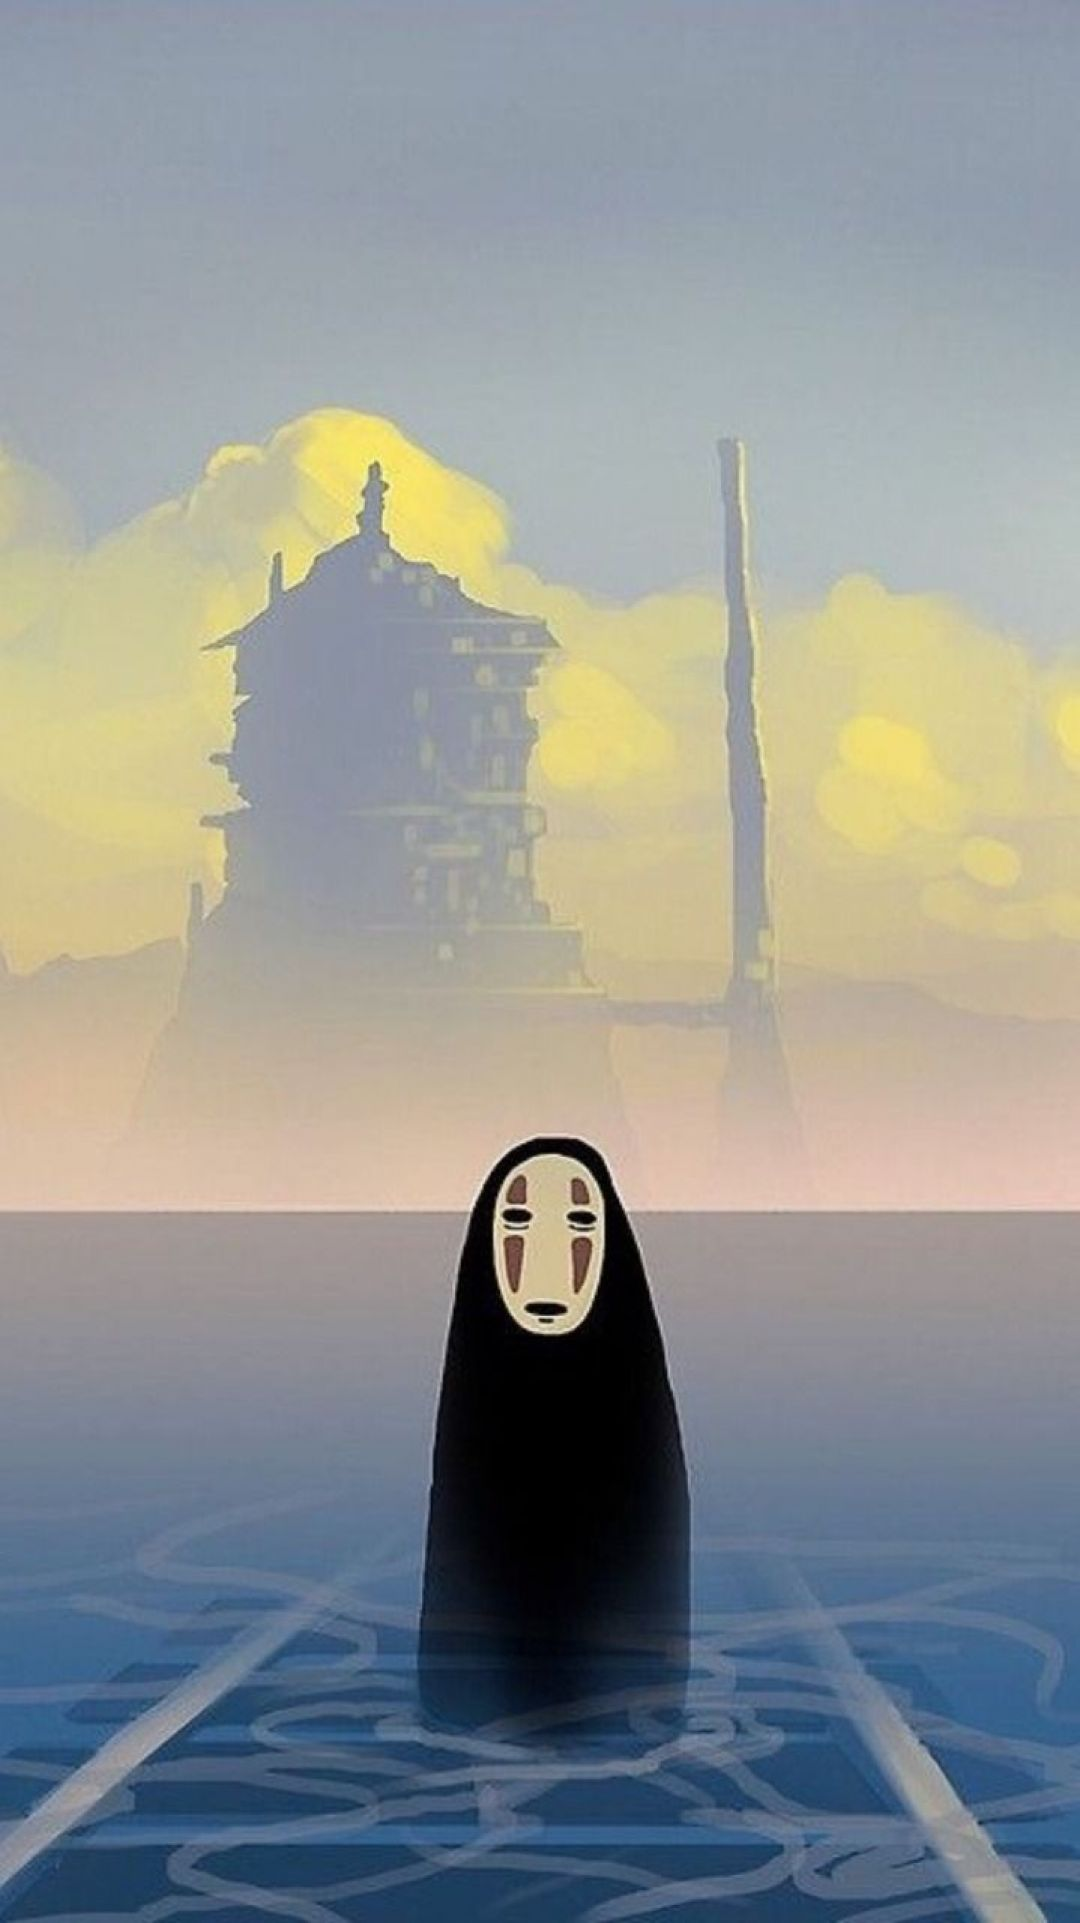 165 Spirited Away Android Iphone Desktop Hd Backgrounds Wallpapers 1080p 4k 1080x1923 2020